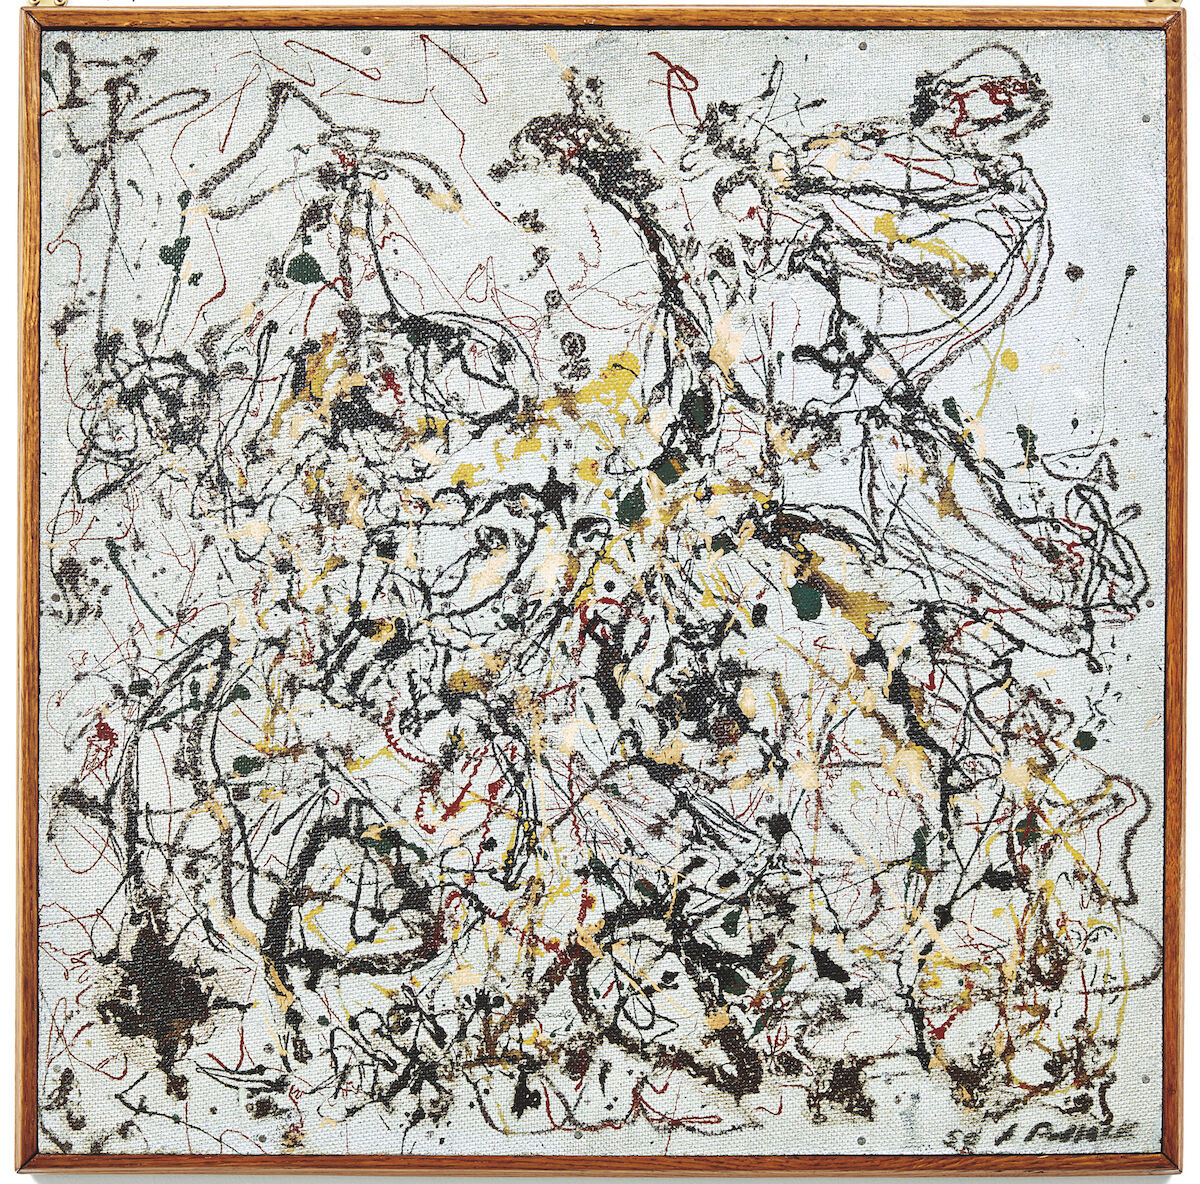 Jackson Pollock, Number 16, 1950, oil on masonite. Image courtesy Phillips.